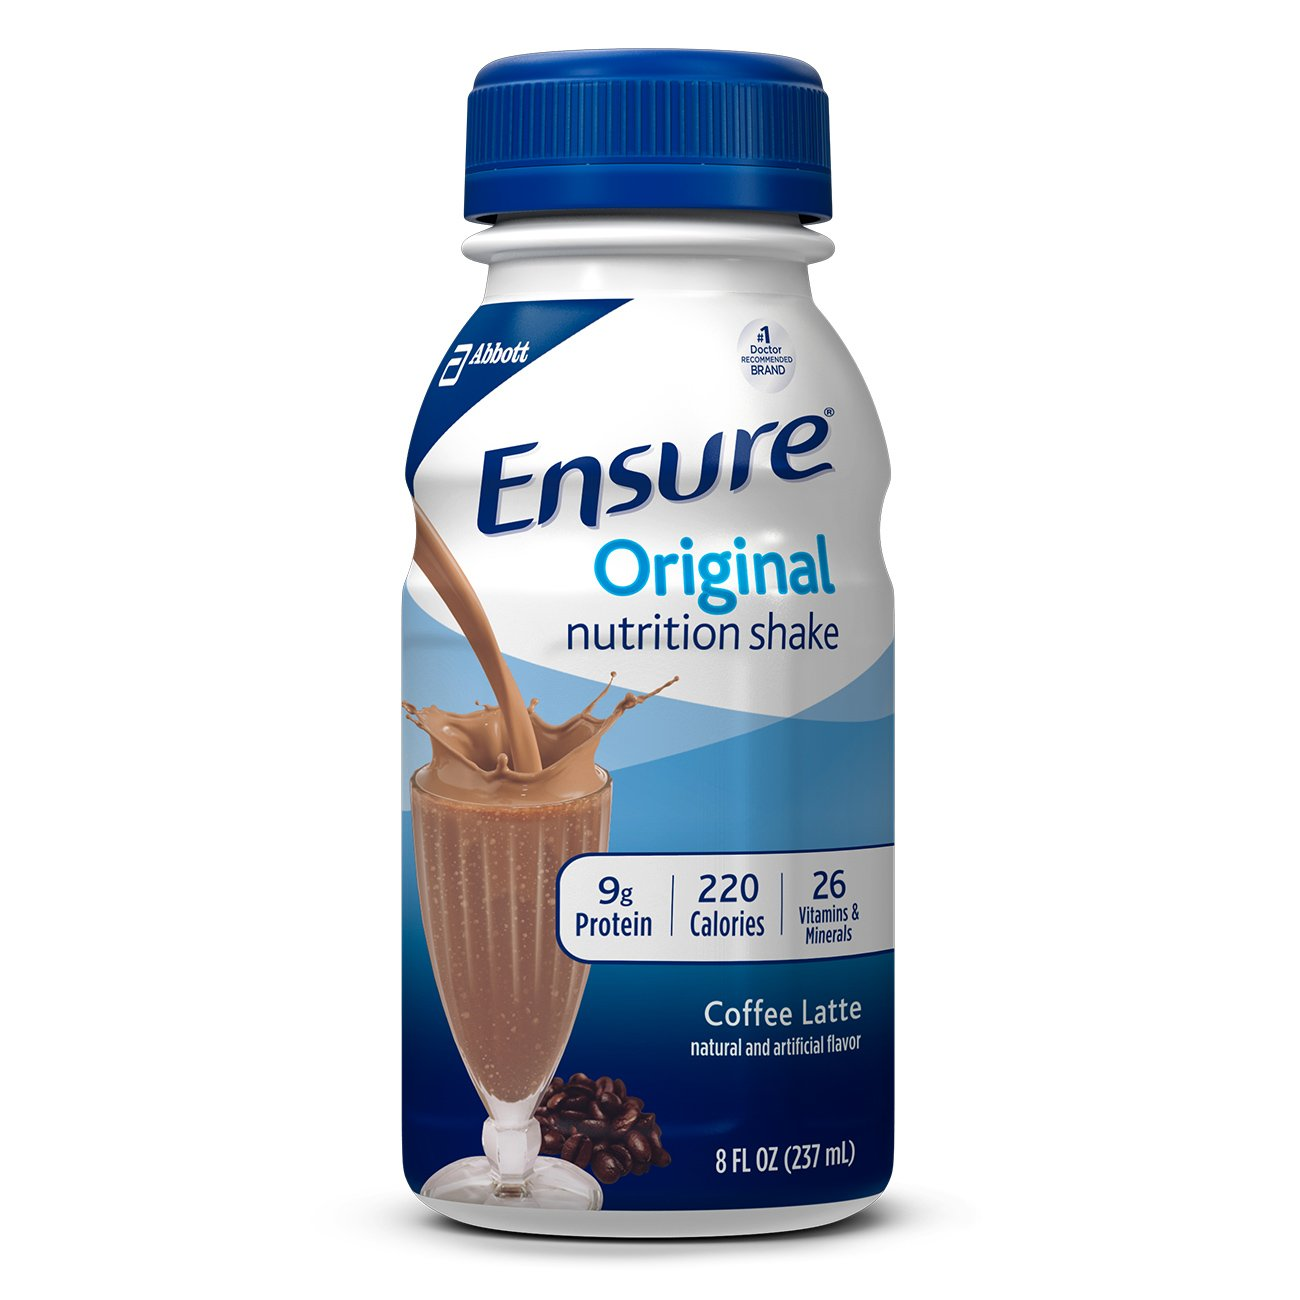 Ensure Original Nutrition Shake with 9 grams of protein, Meal Replacement Shakes, Coffee Latte